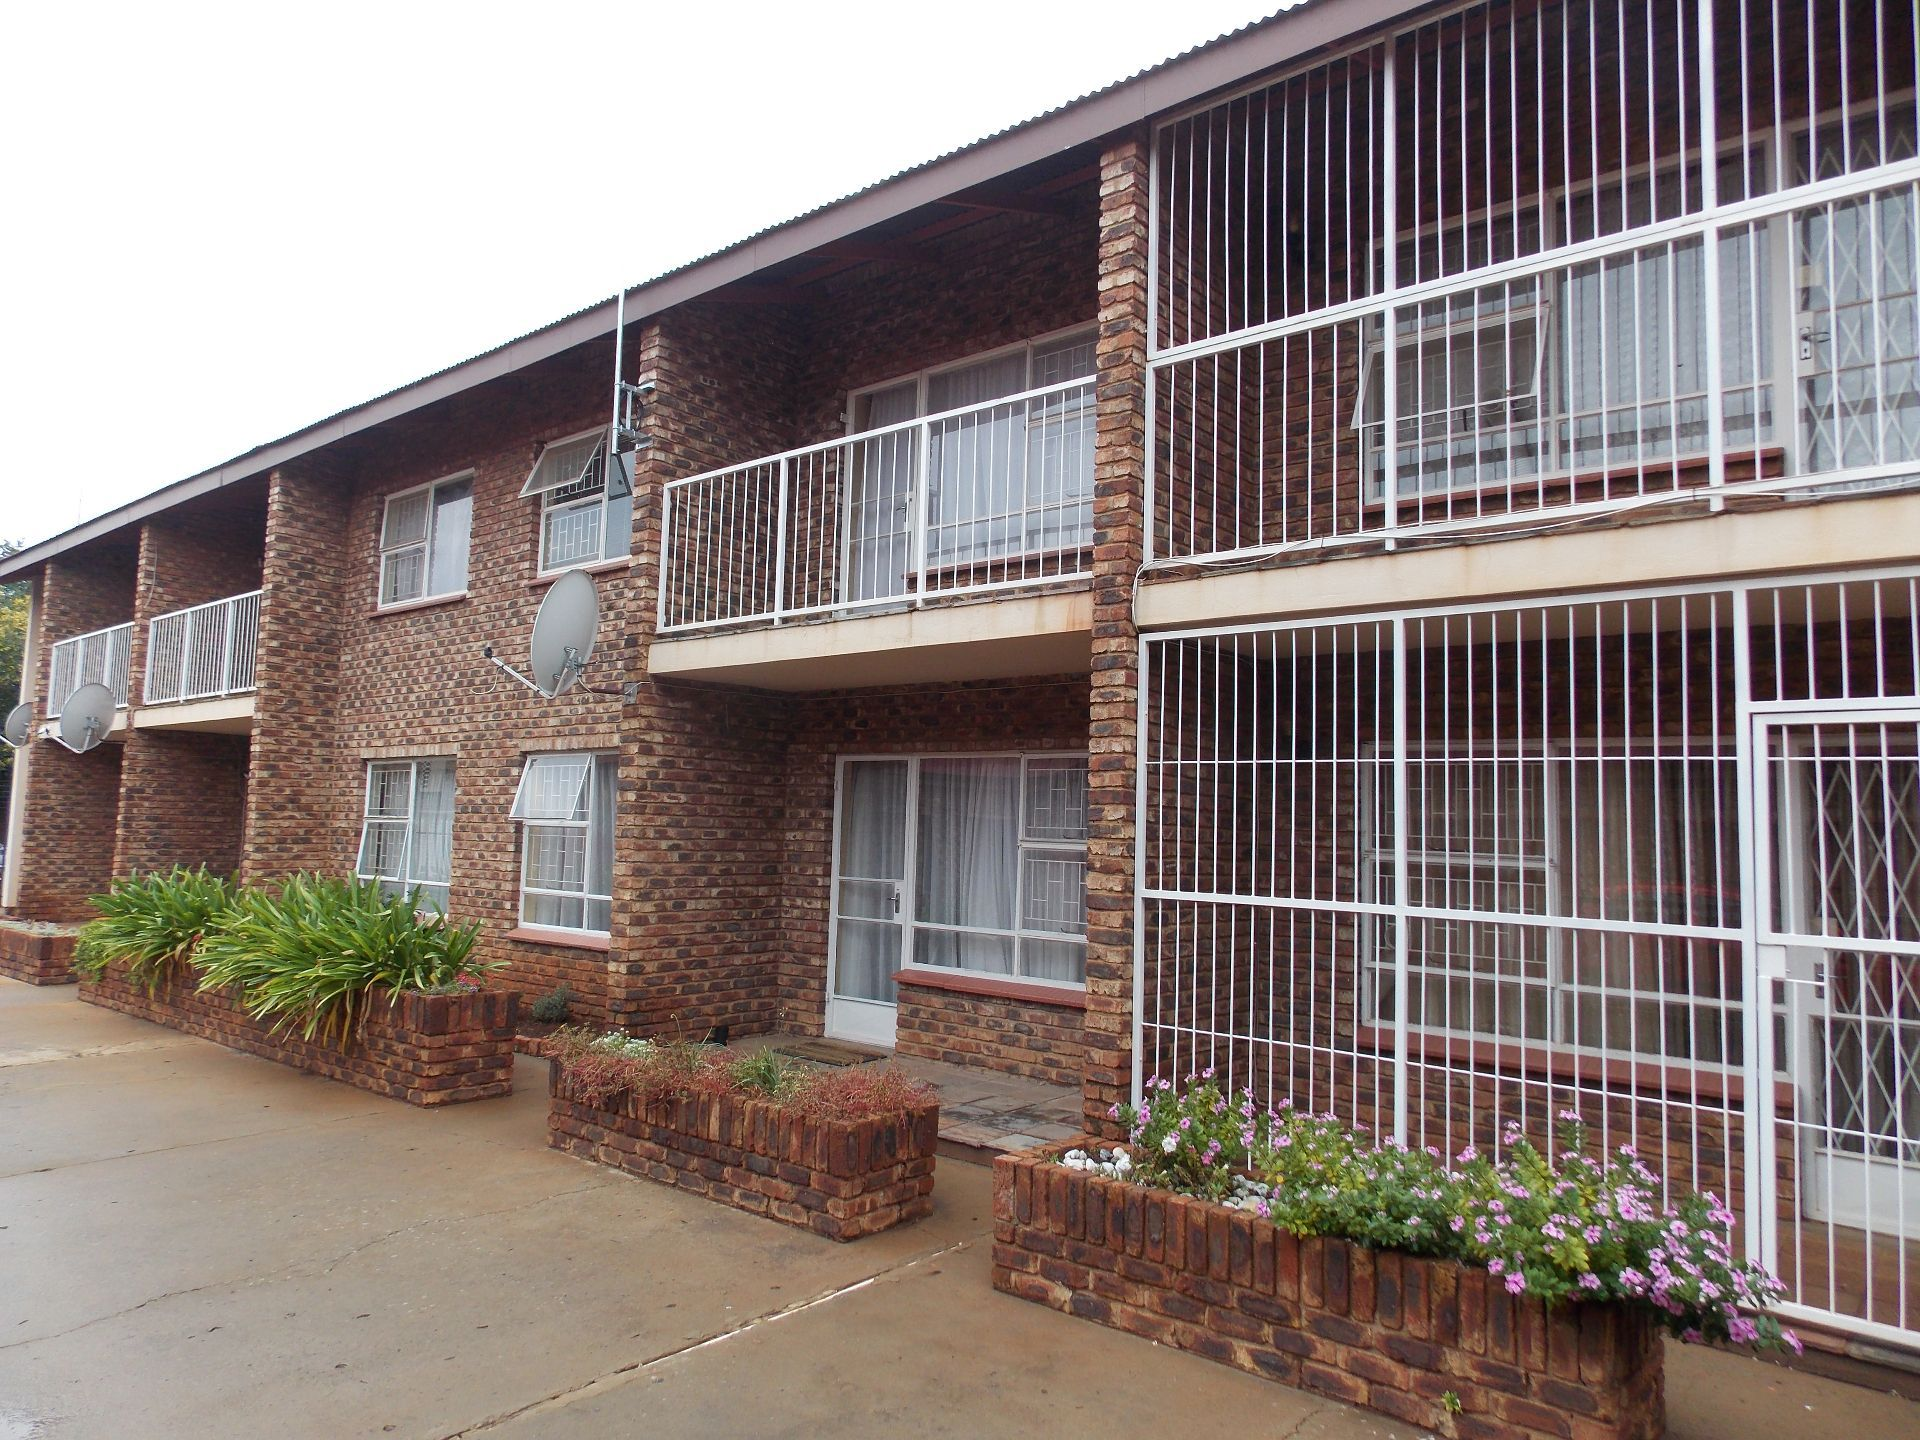 Potchefstroom Central property for sale. Ref No: 13414401. Picture no 1